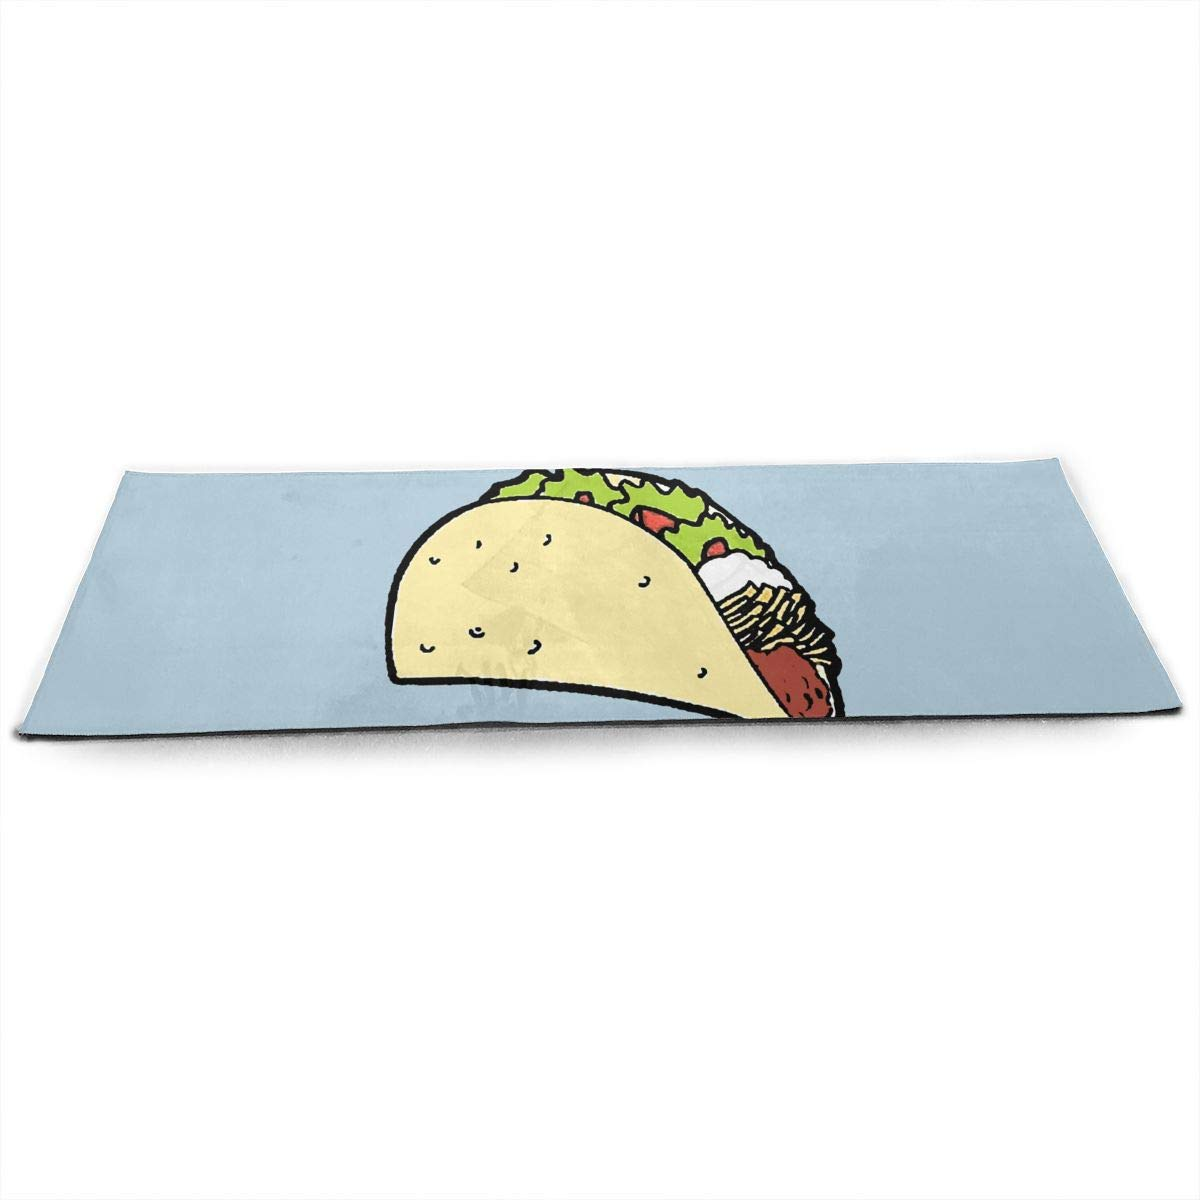 Amazon.com: I Hate Tacos Thick Exercise Yoga Mat Area Rug ...